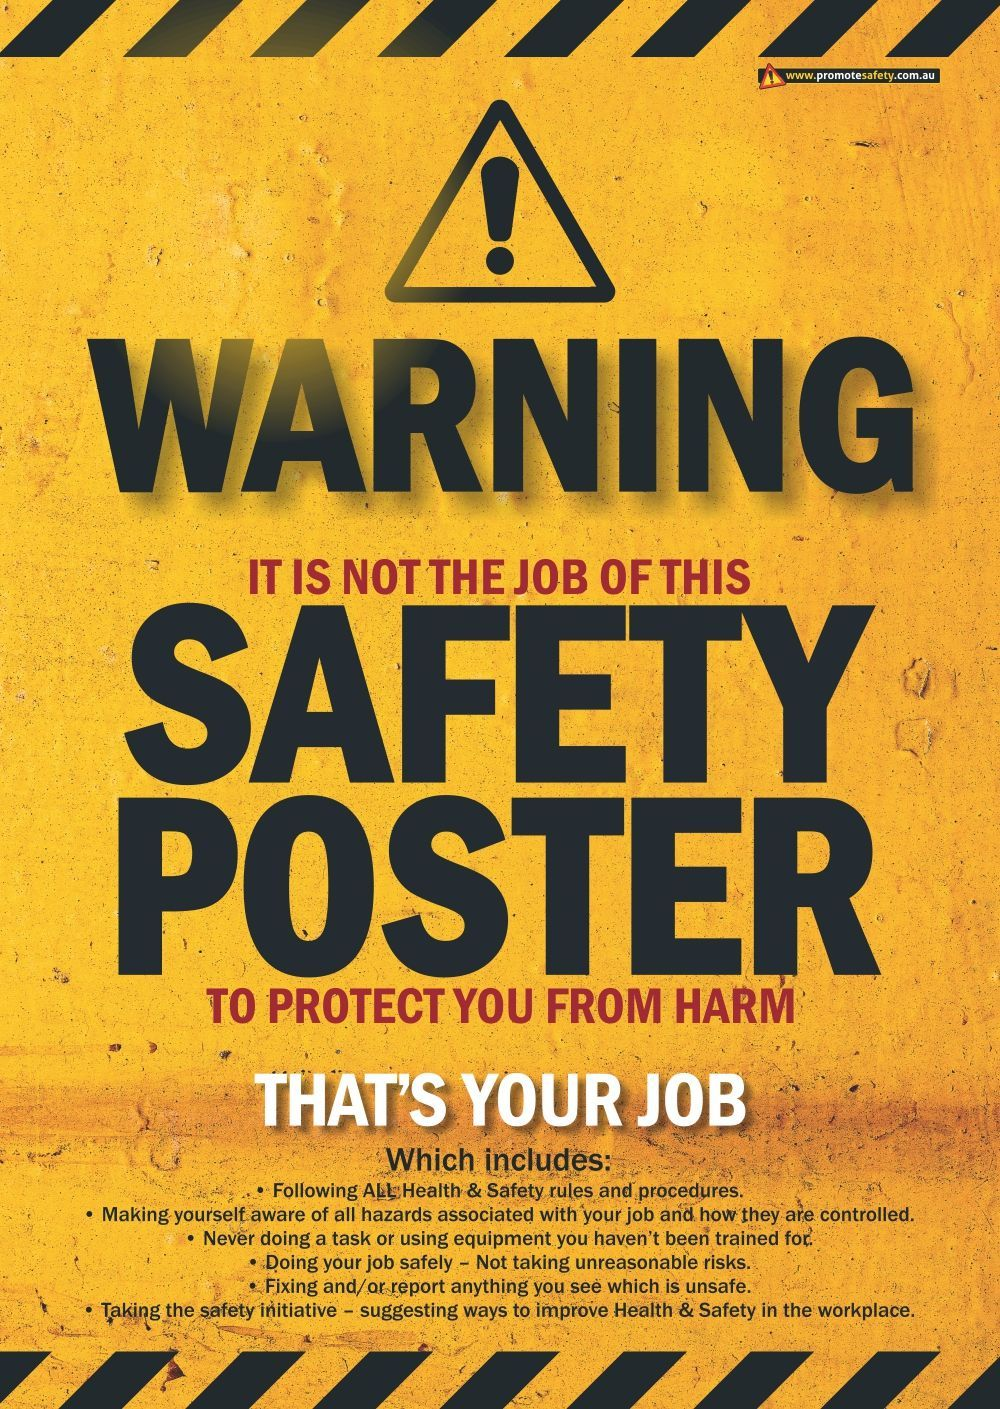 Safety Posters & Resources | Promote Safety in 2020 ...